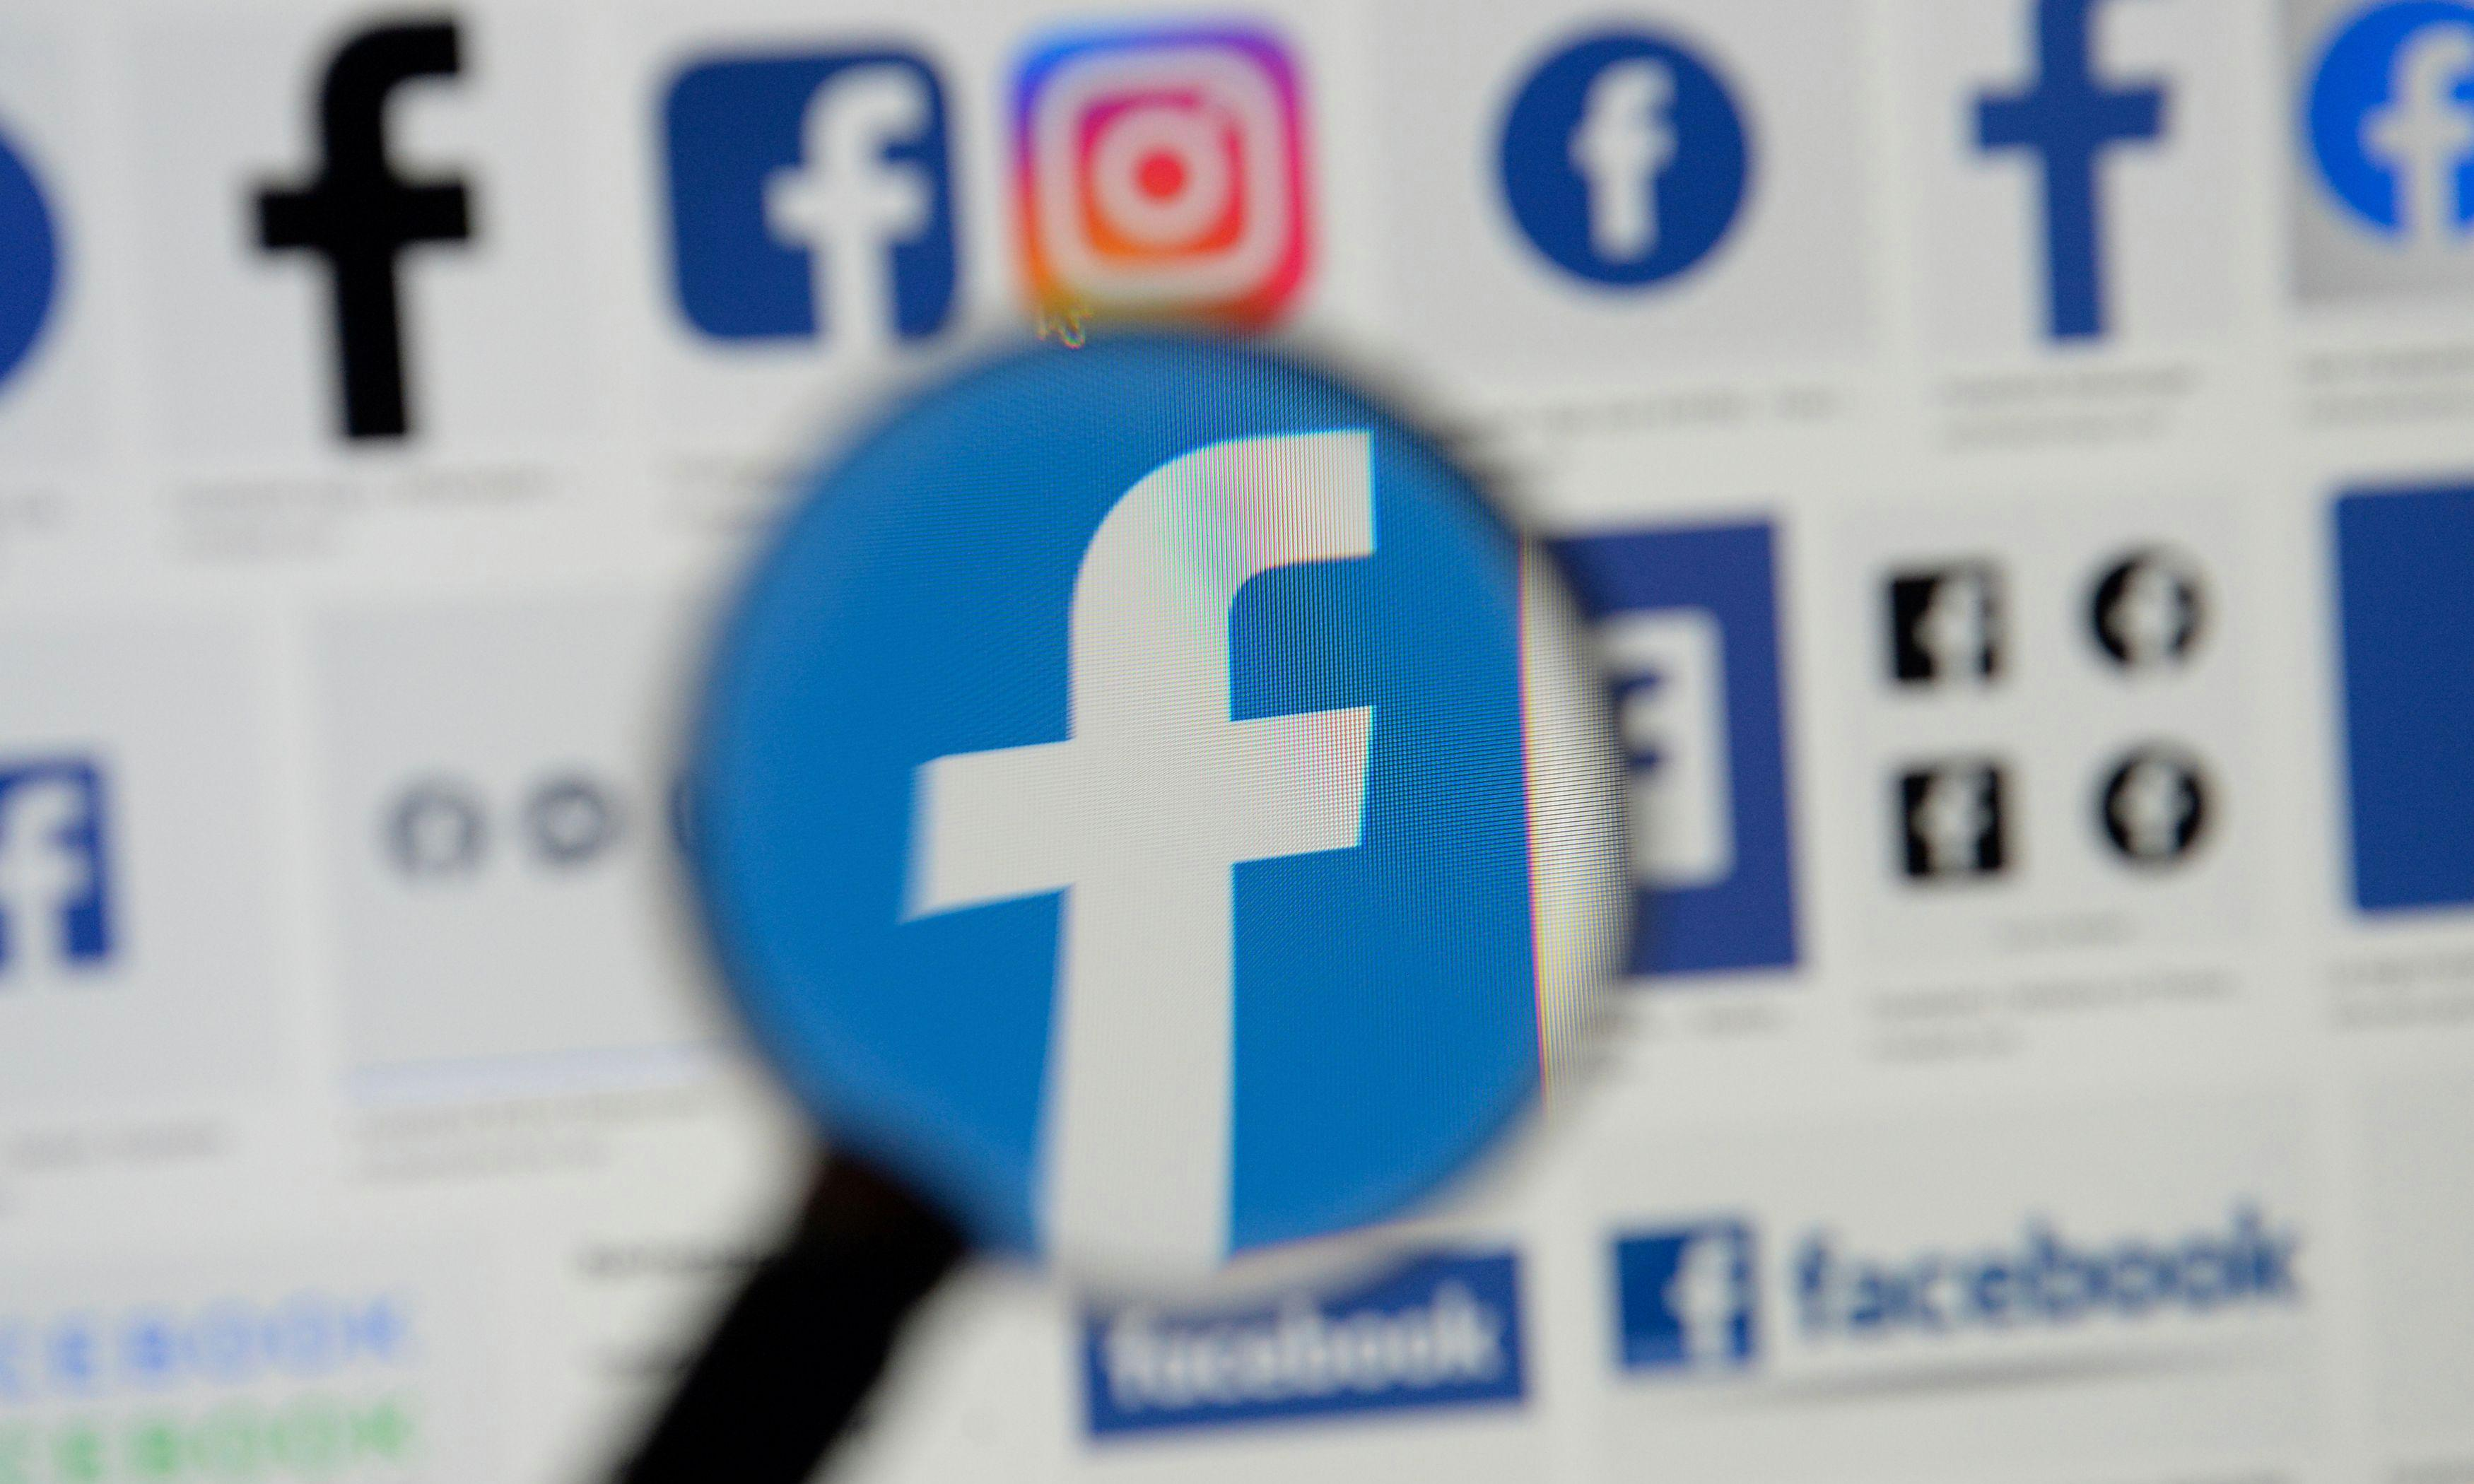 Facebook pledges to ban misinformation about 2020 US census